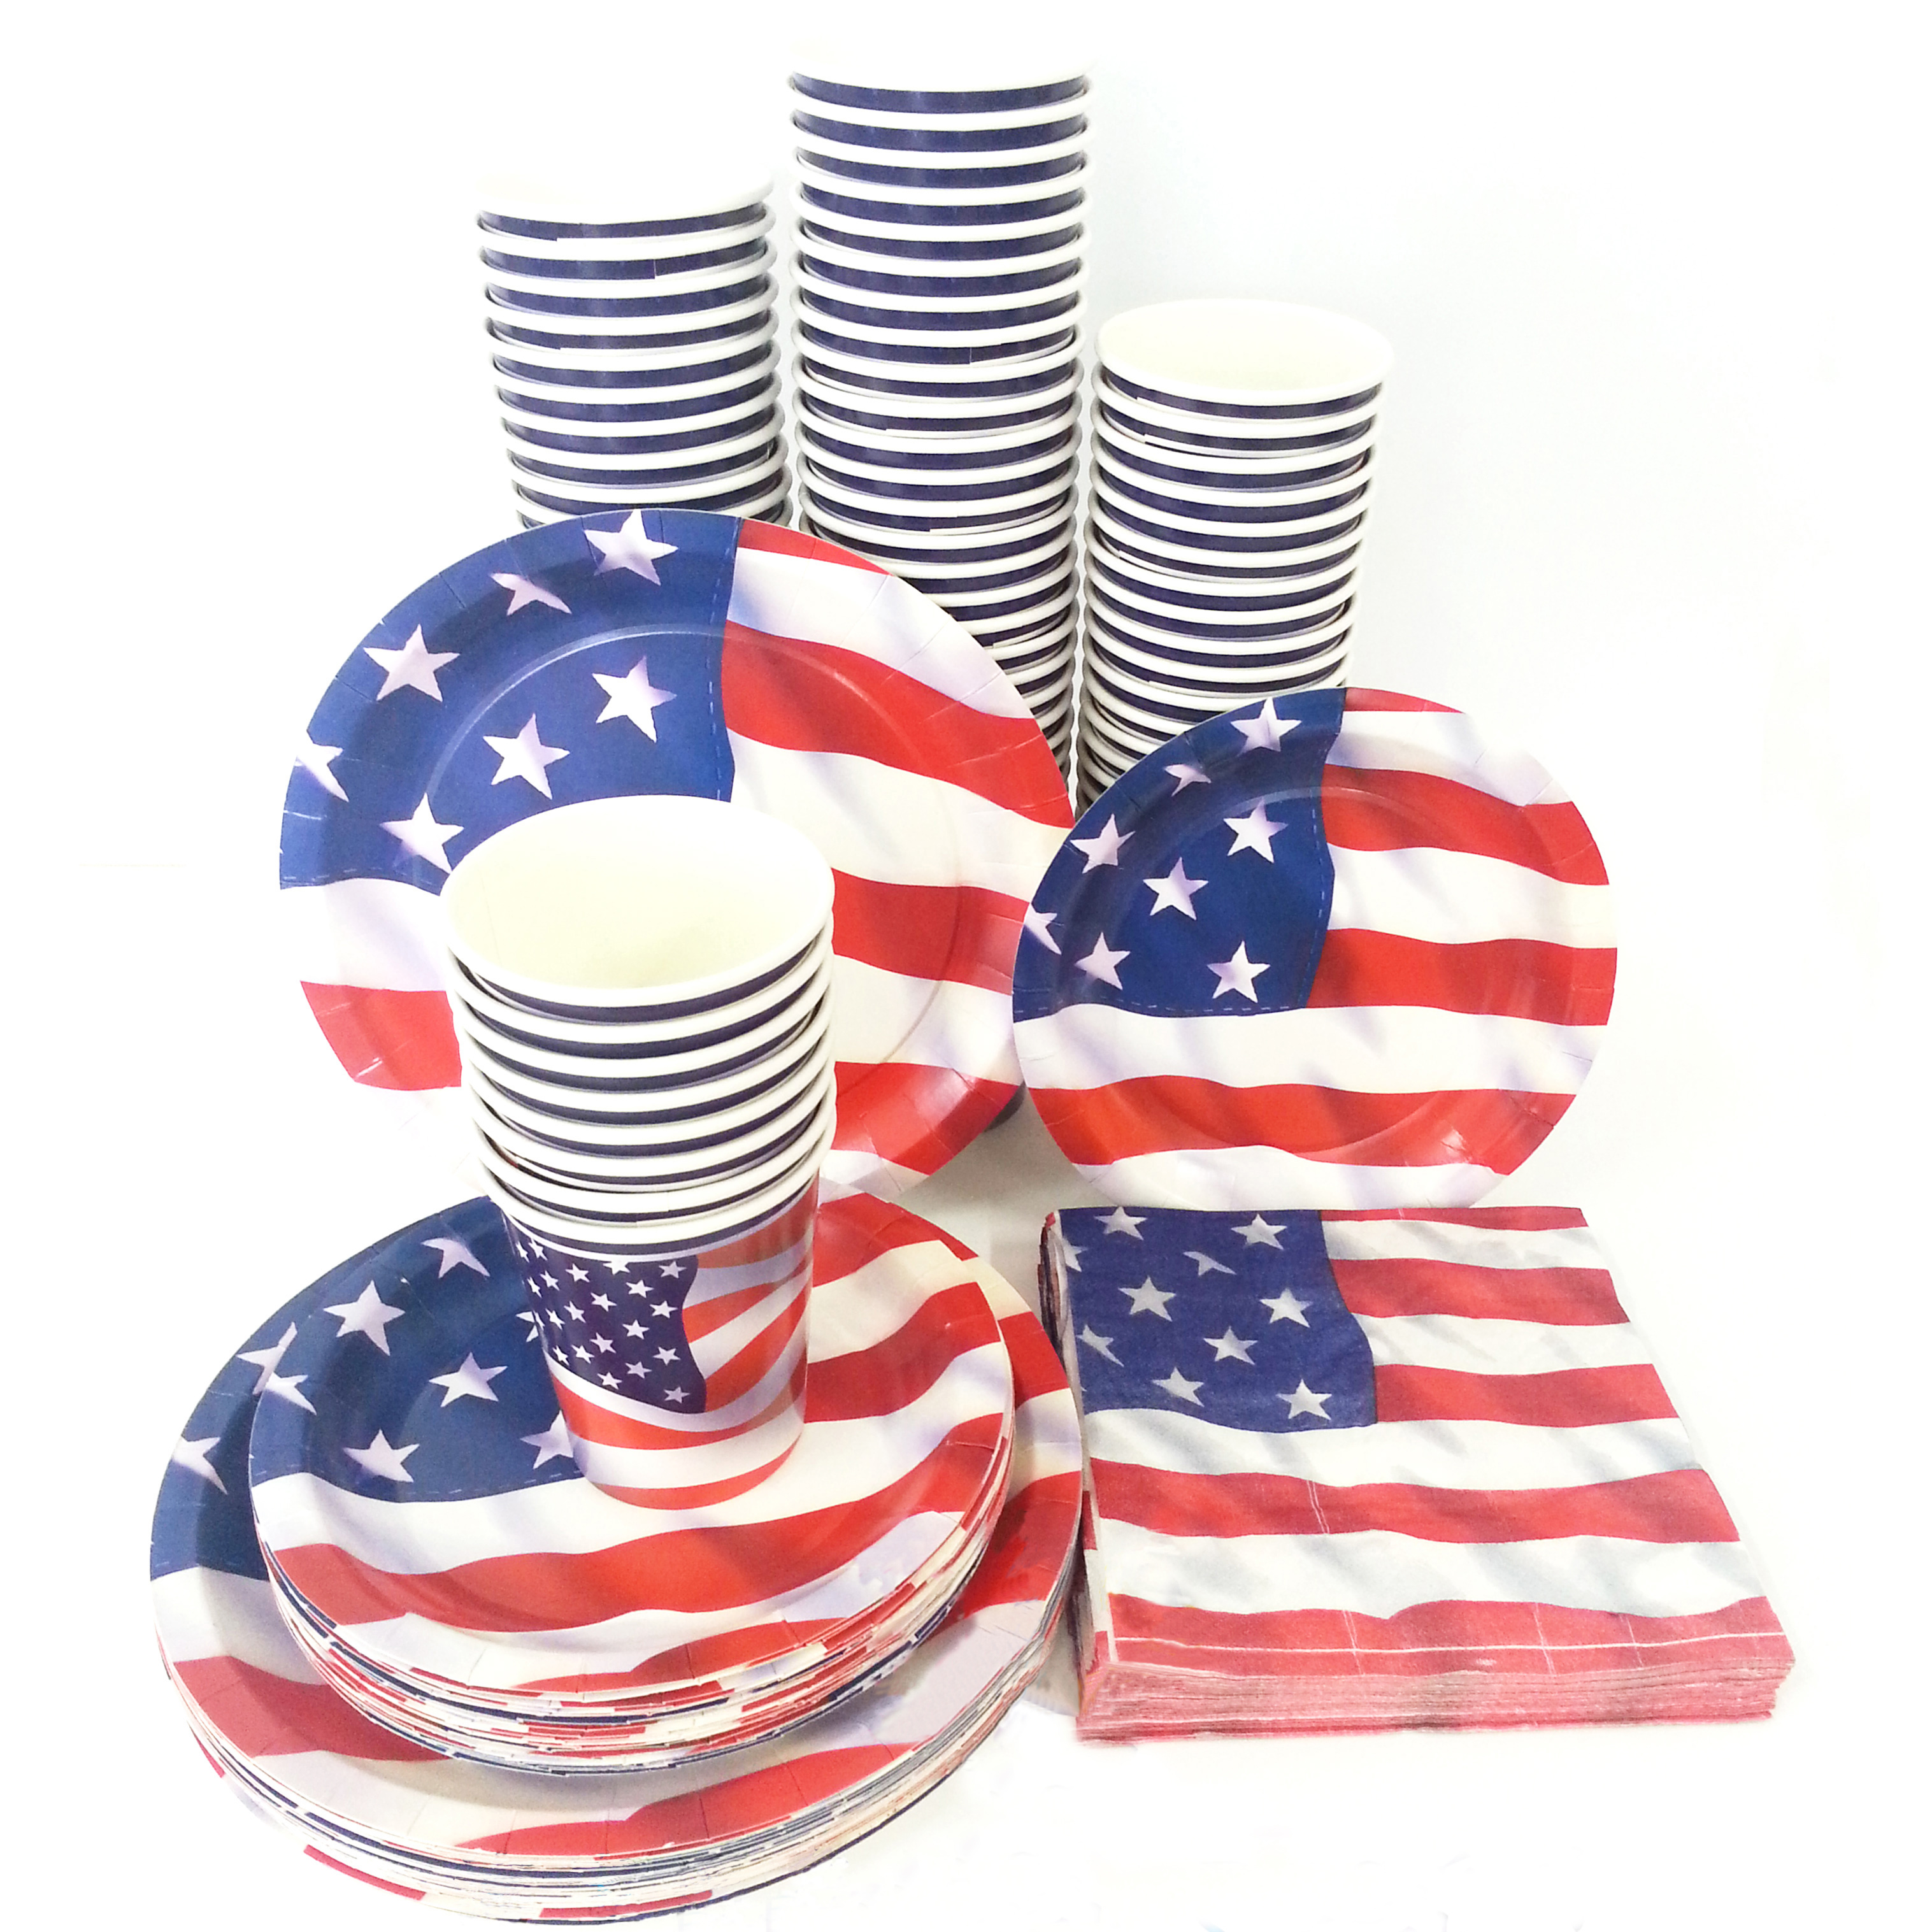 4th Of July Independence Day Decorations Disposable Tableware Sets 2019 American Independence Day Party Supplies